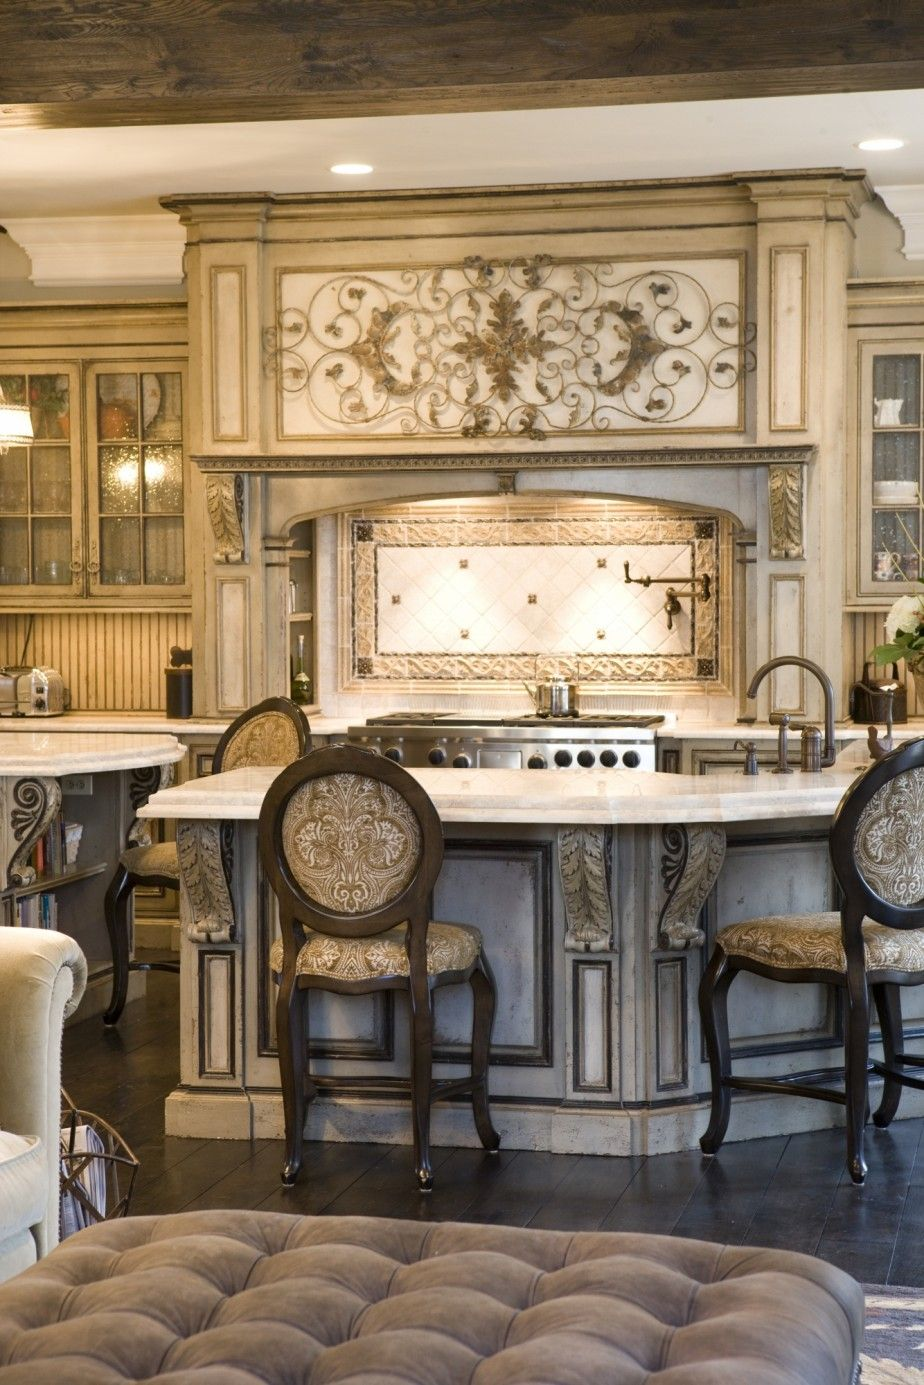 Grand European Casual Habersham Kitchen Cabinets With Racks And Drawers Gorgeous Luxury Kitchens Tuscan Kitchen Beautiful Kitchens